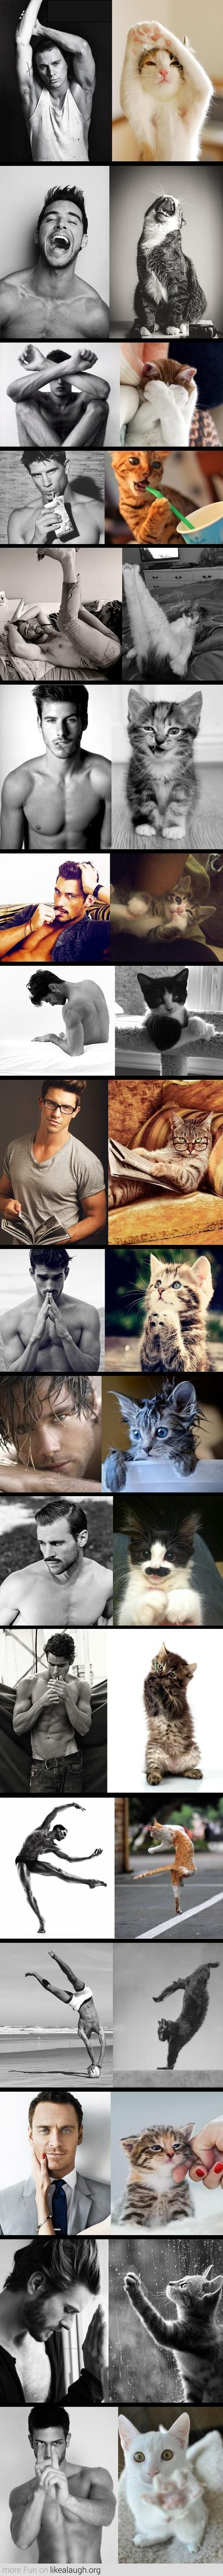 Models vs Cats TAKE 2. Cats win every time   LOVE THIS